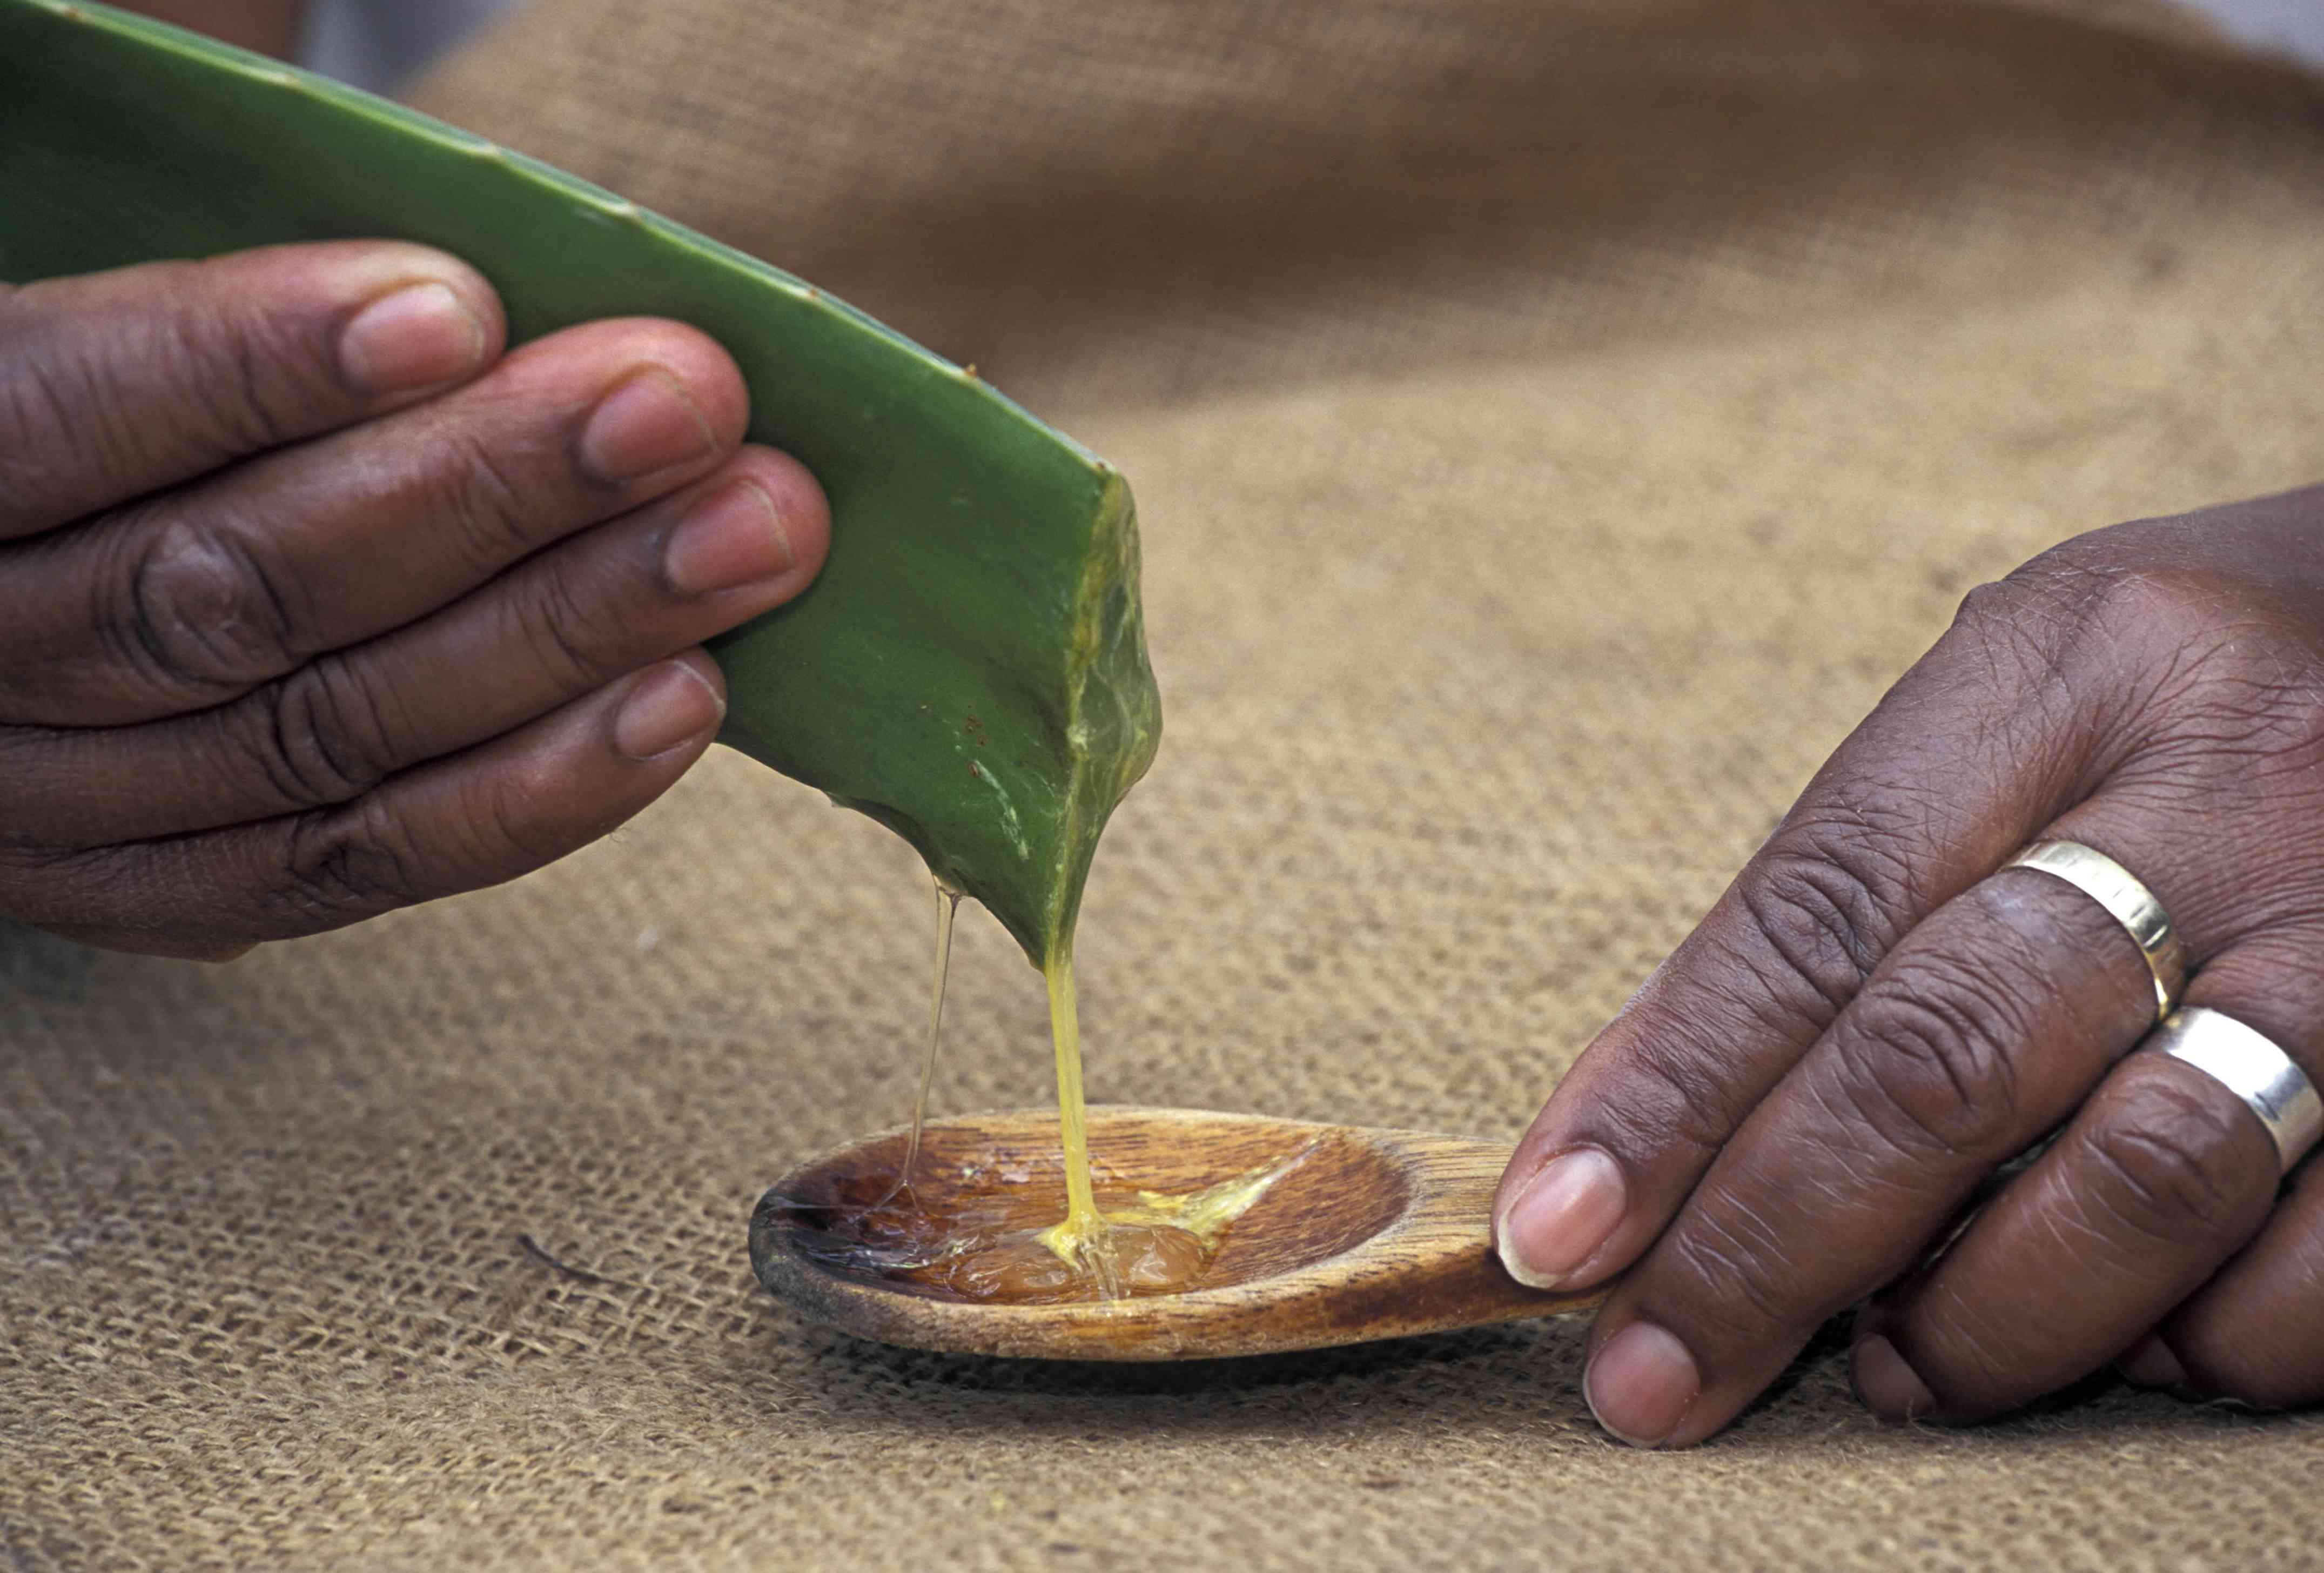 Someone squeezes a cut leaf of aloe vera, with the gel falling onto a wooden spoon below.